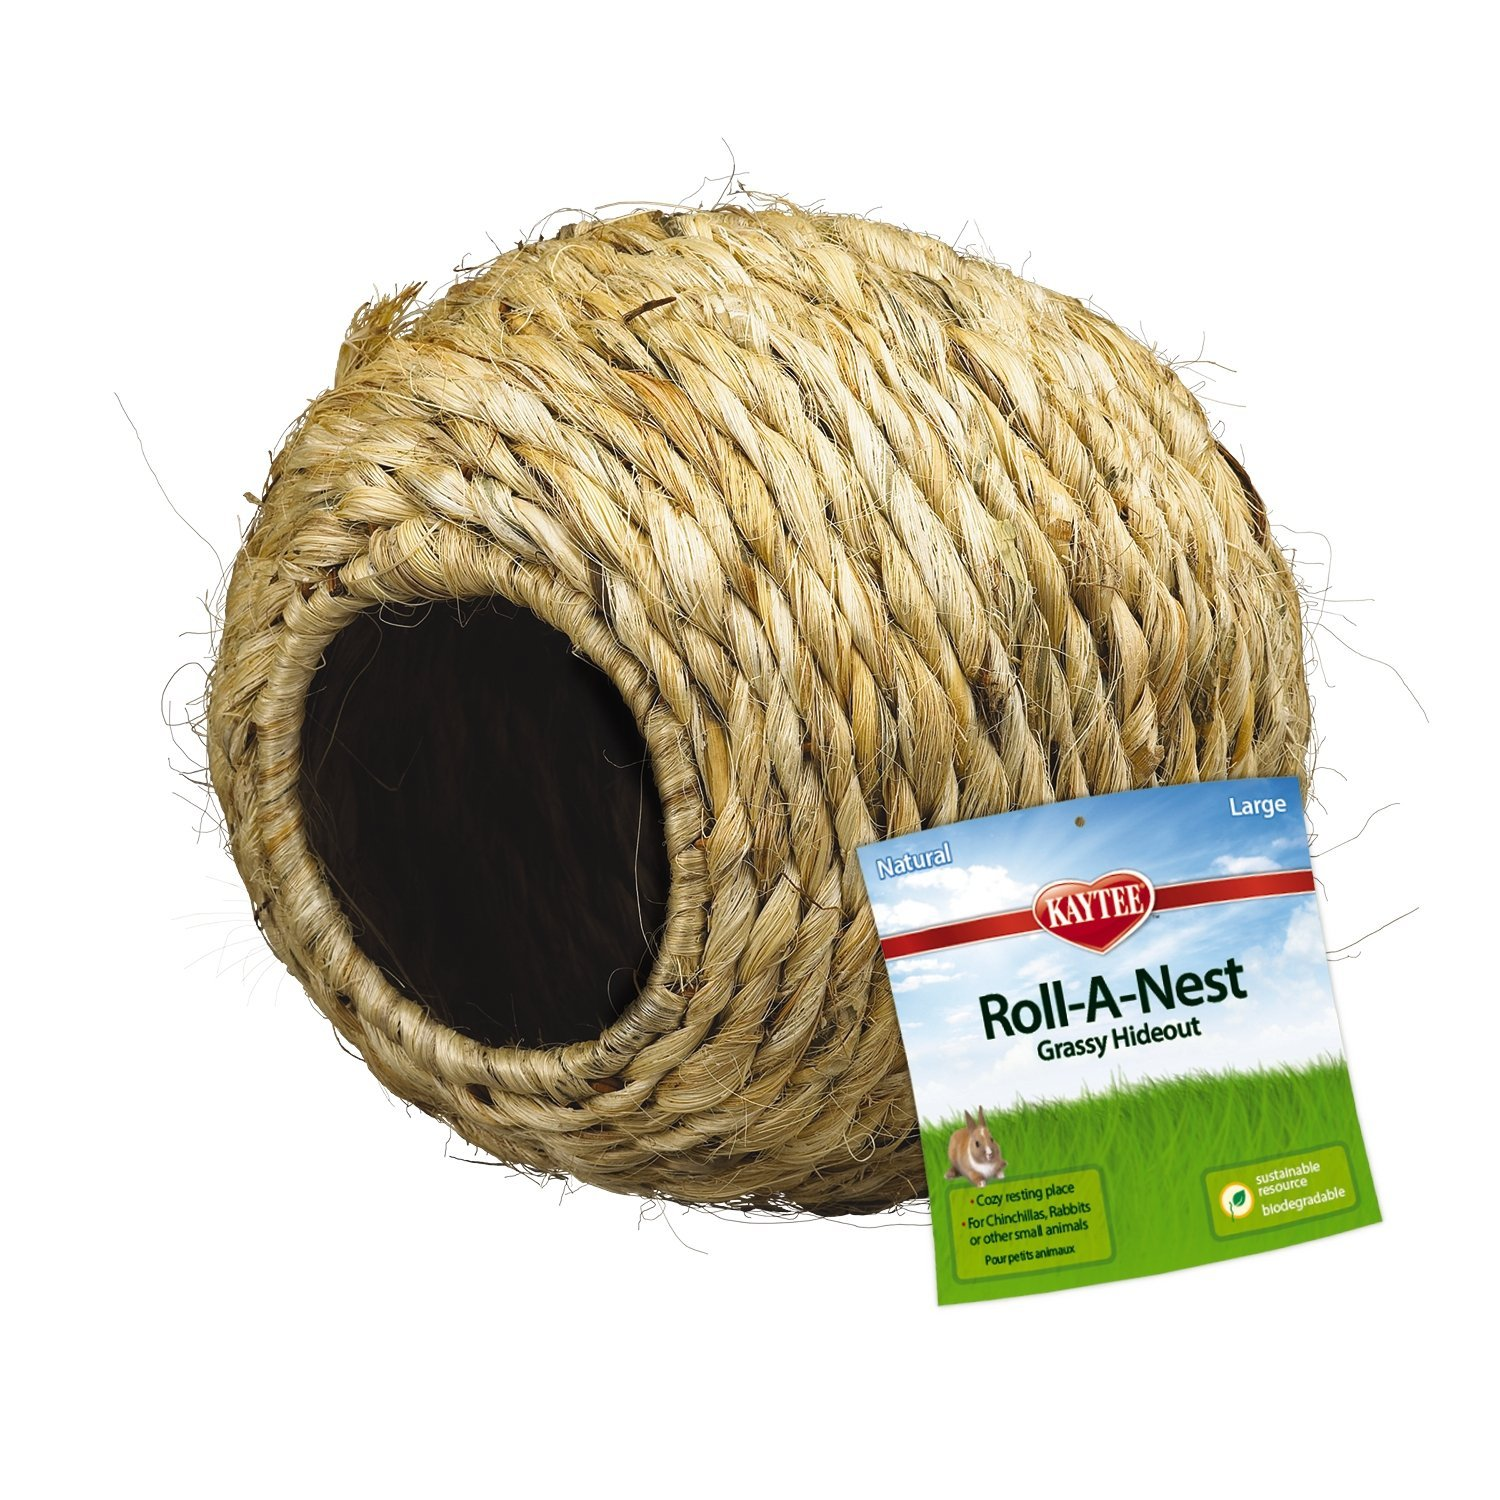 Super Pet Guinea Pig Grassy Roll-a-Nest Hideout